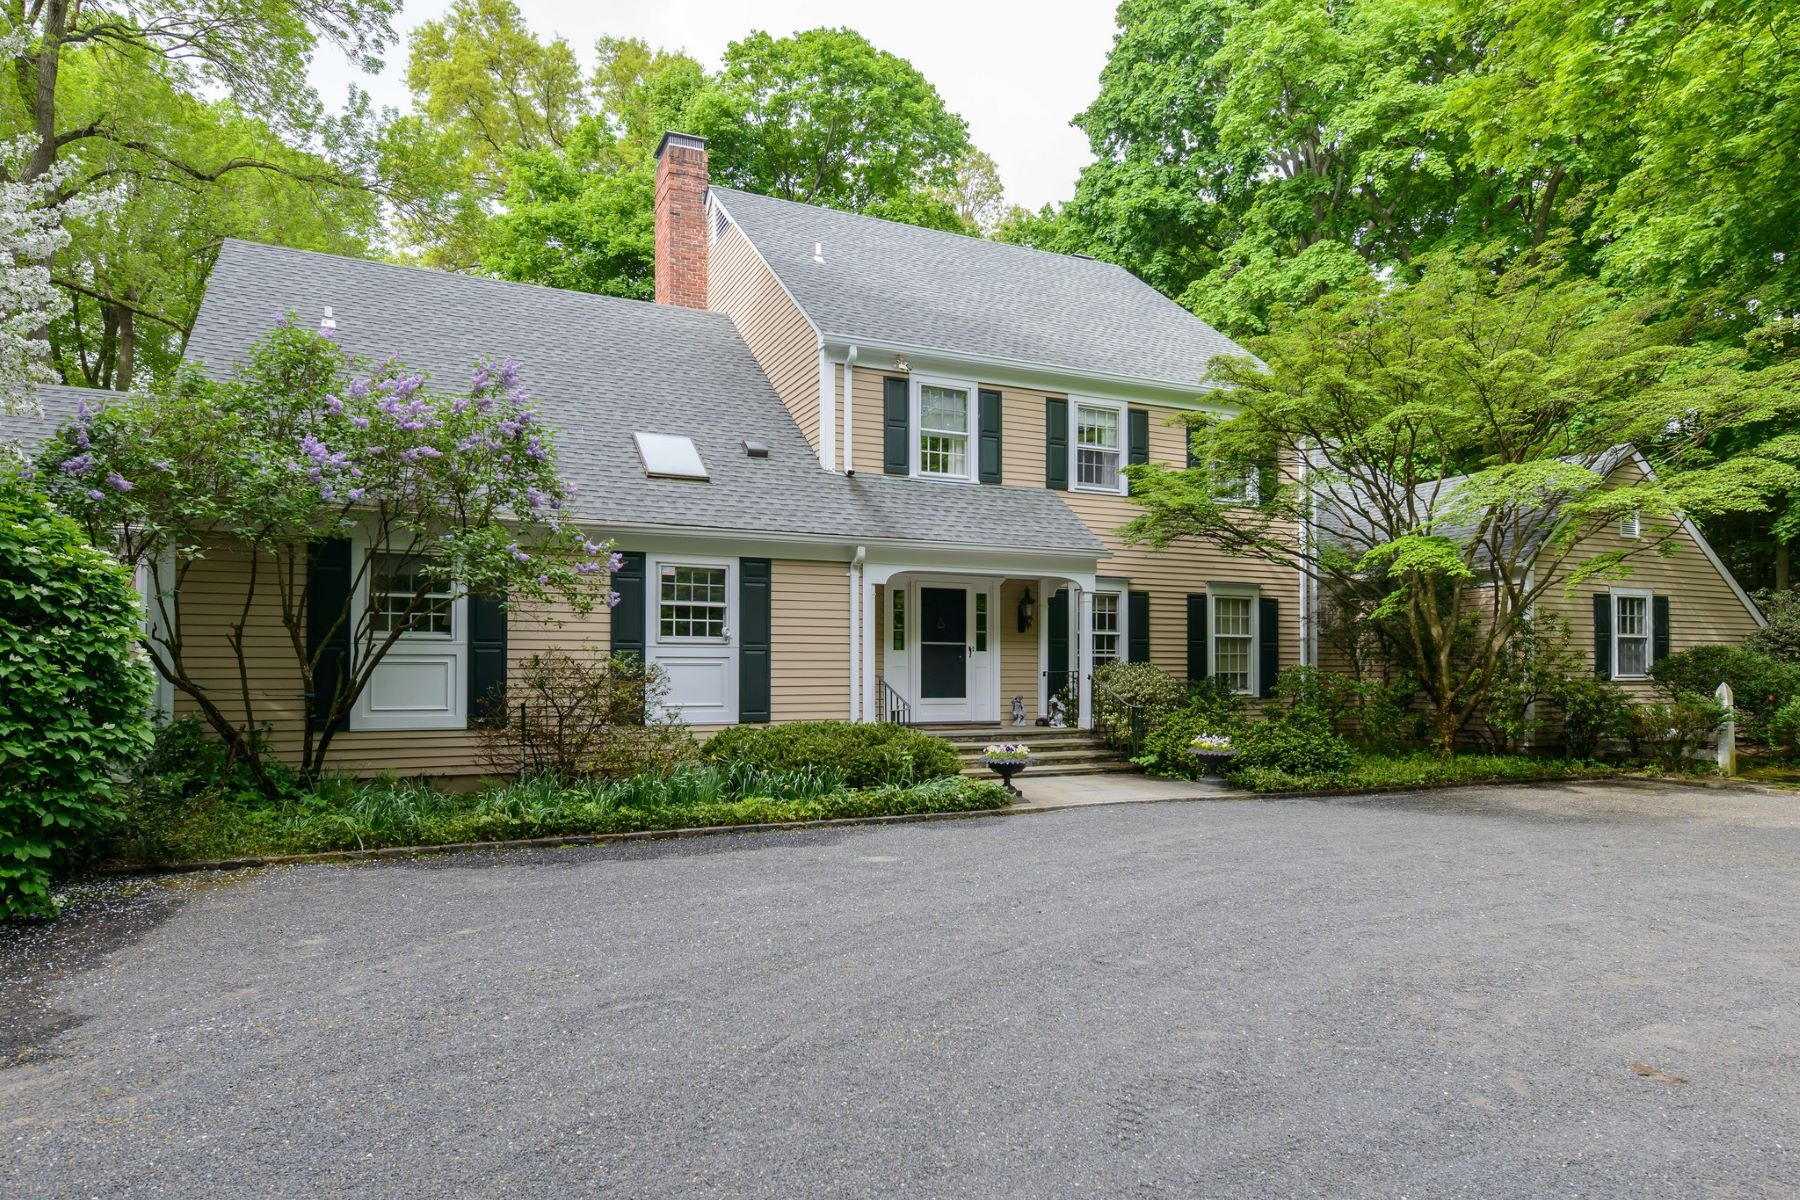 Single Family Homes for Active at Locust Valley 4 Cherrywood Rd Locust Valley, New York 11560 United States